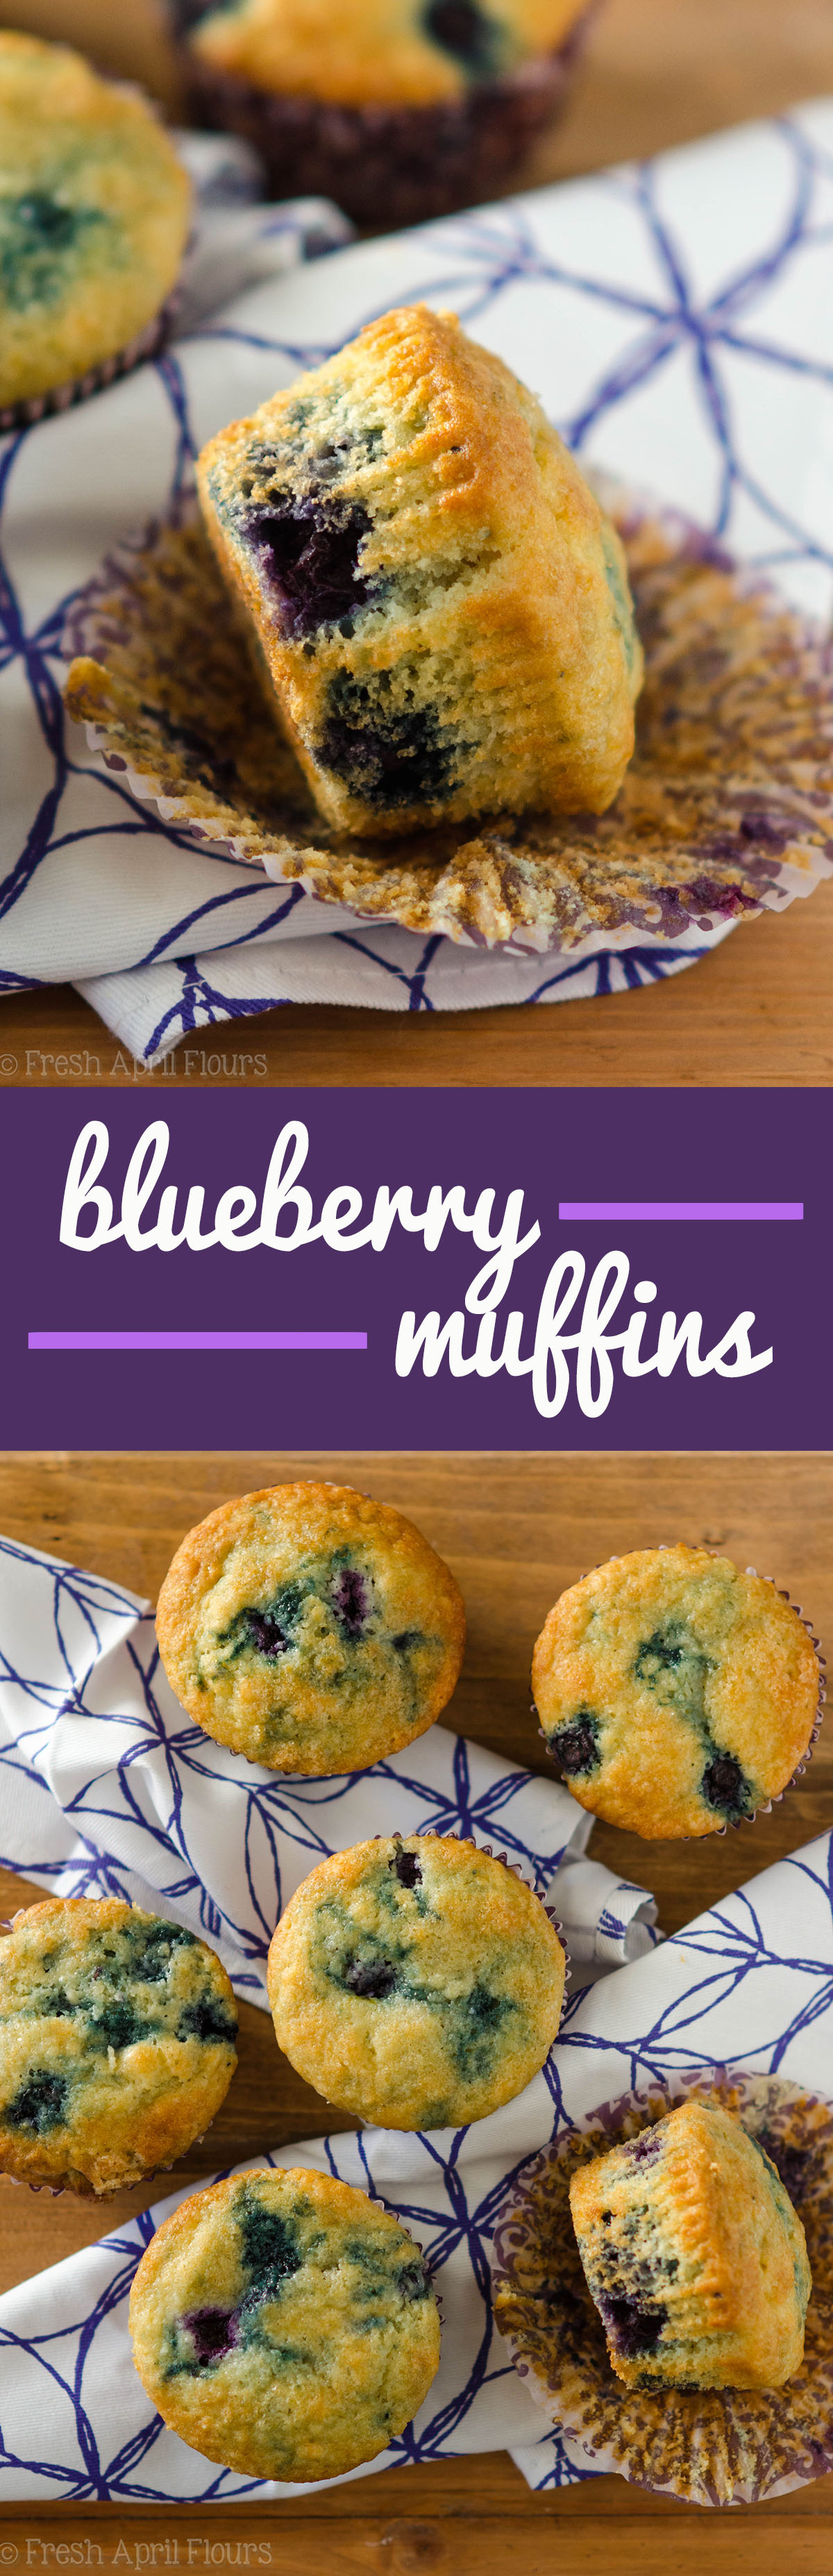 Blueberry Muffins: A quick and easy recipe for the classic! Moist, tender, and bursting with juicy blueberries.